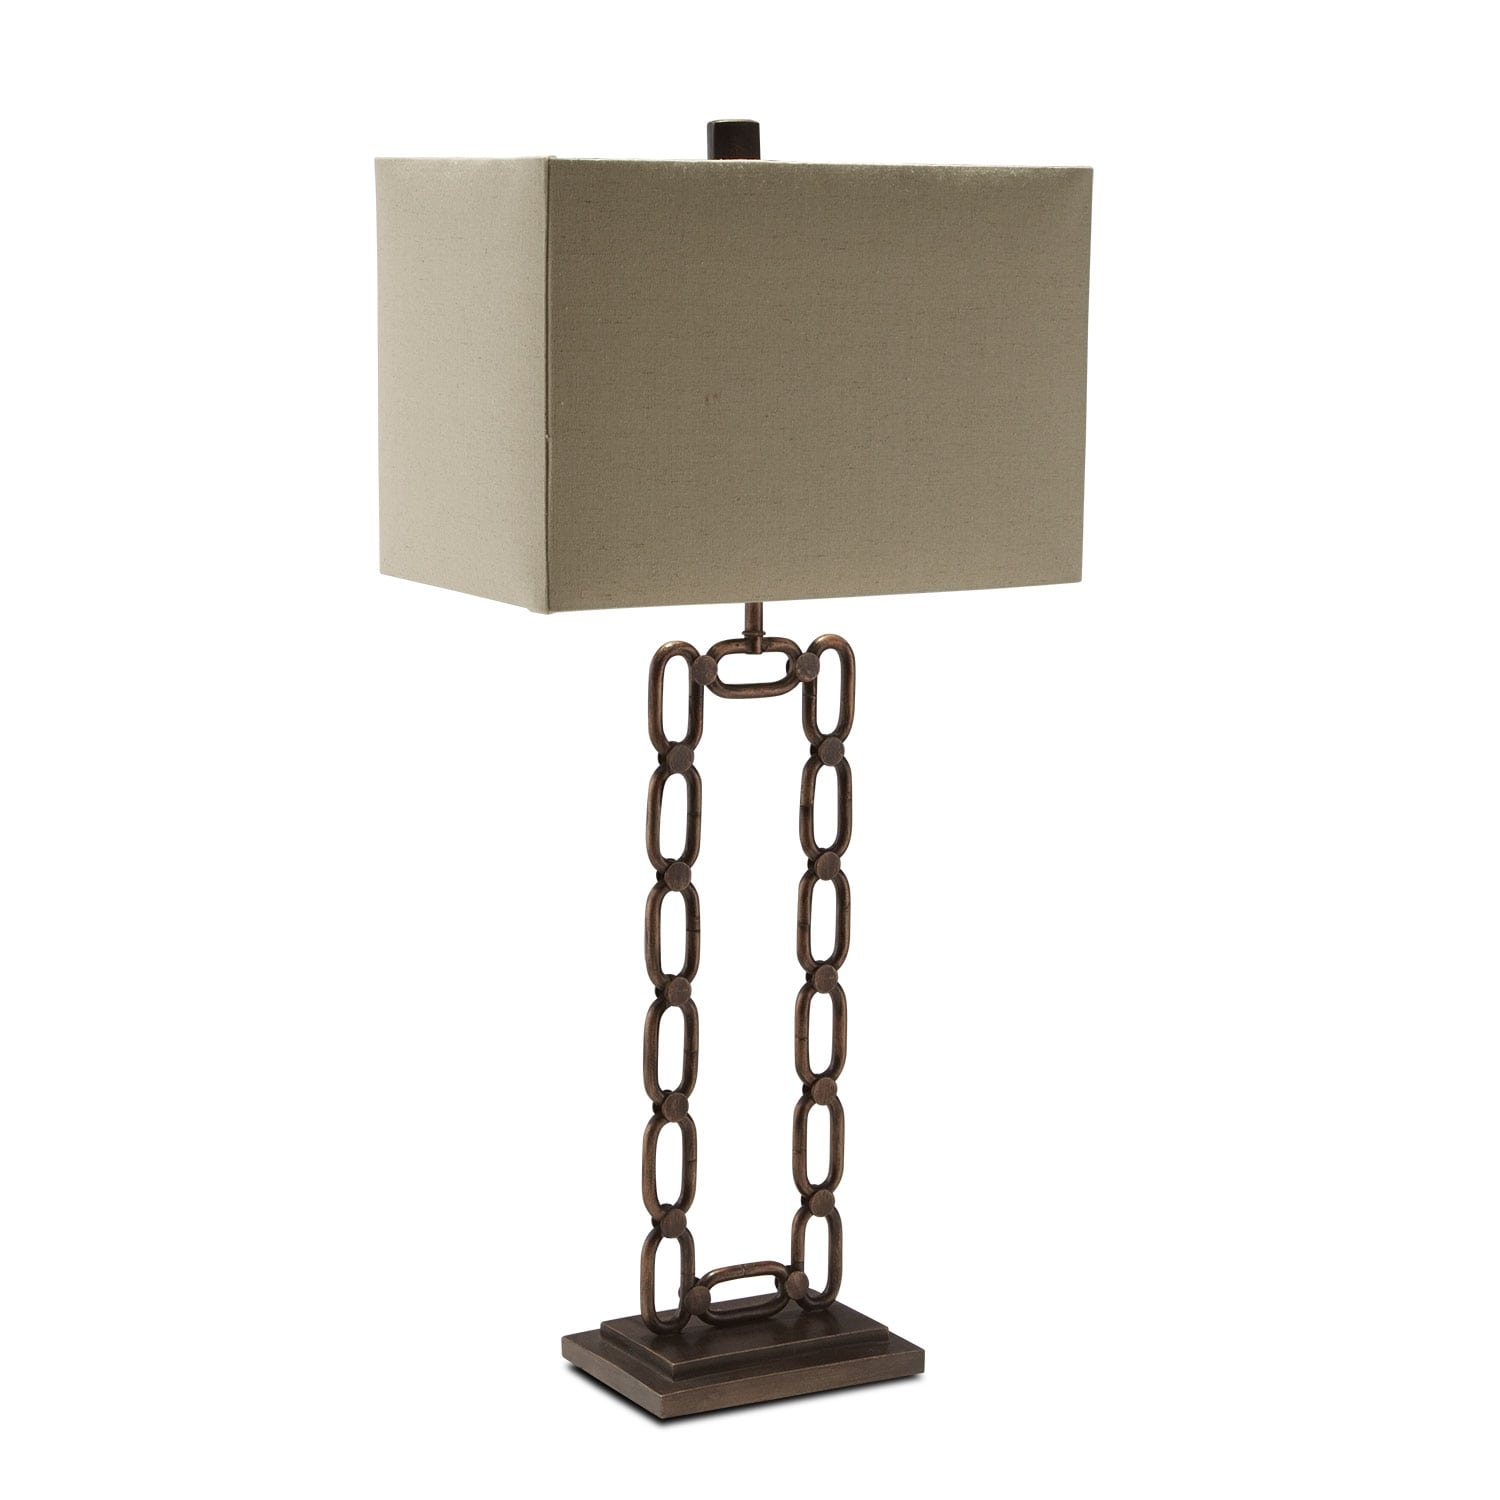 Home Accessories - Chain Table Lamp